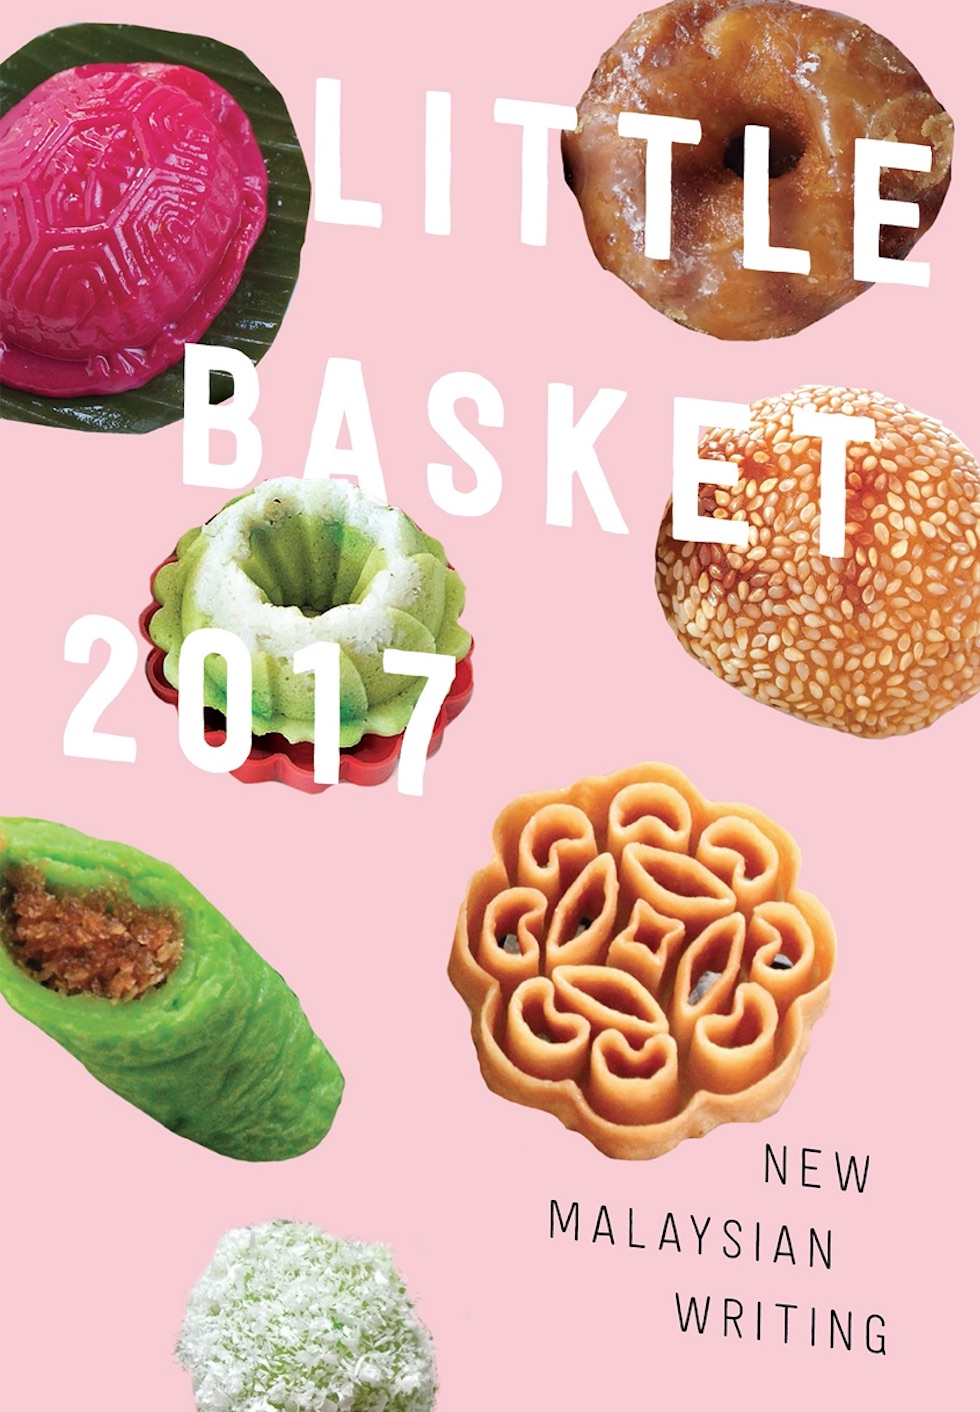 LITTLE BASKET 2017